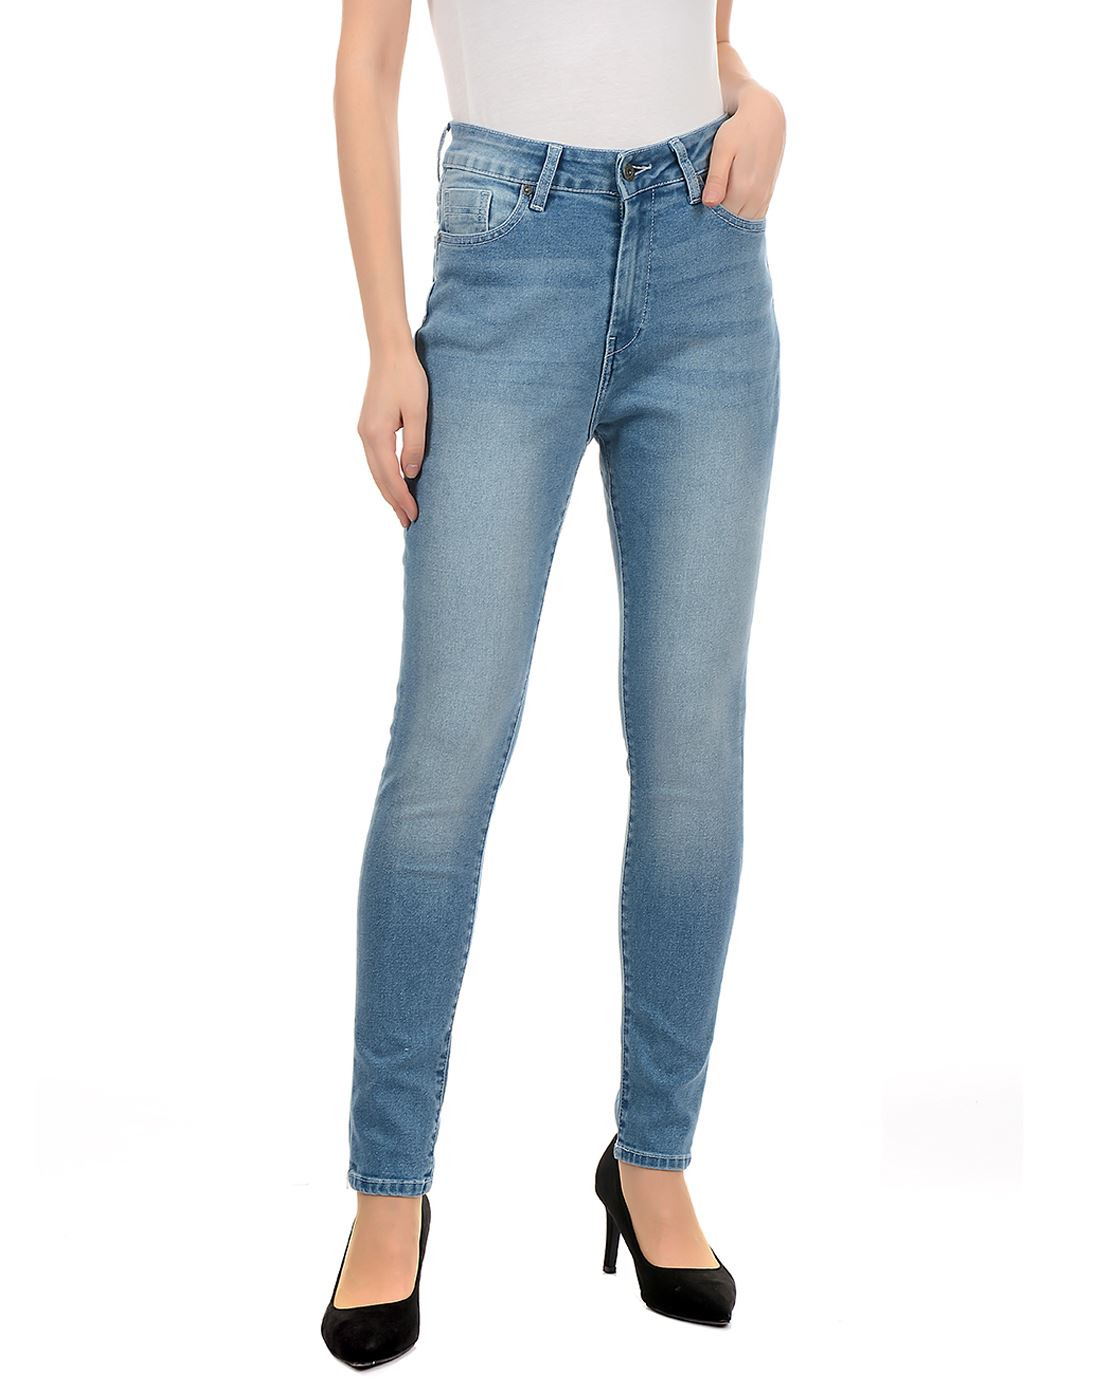 Pepe Jeans Women Casual Wear Blue Jeans